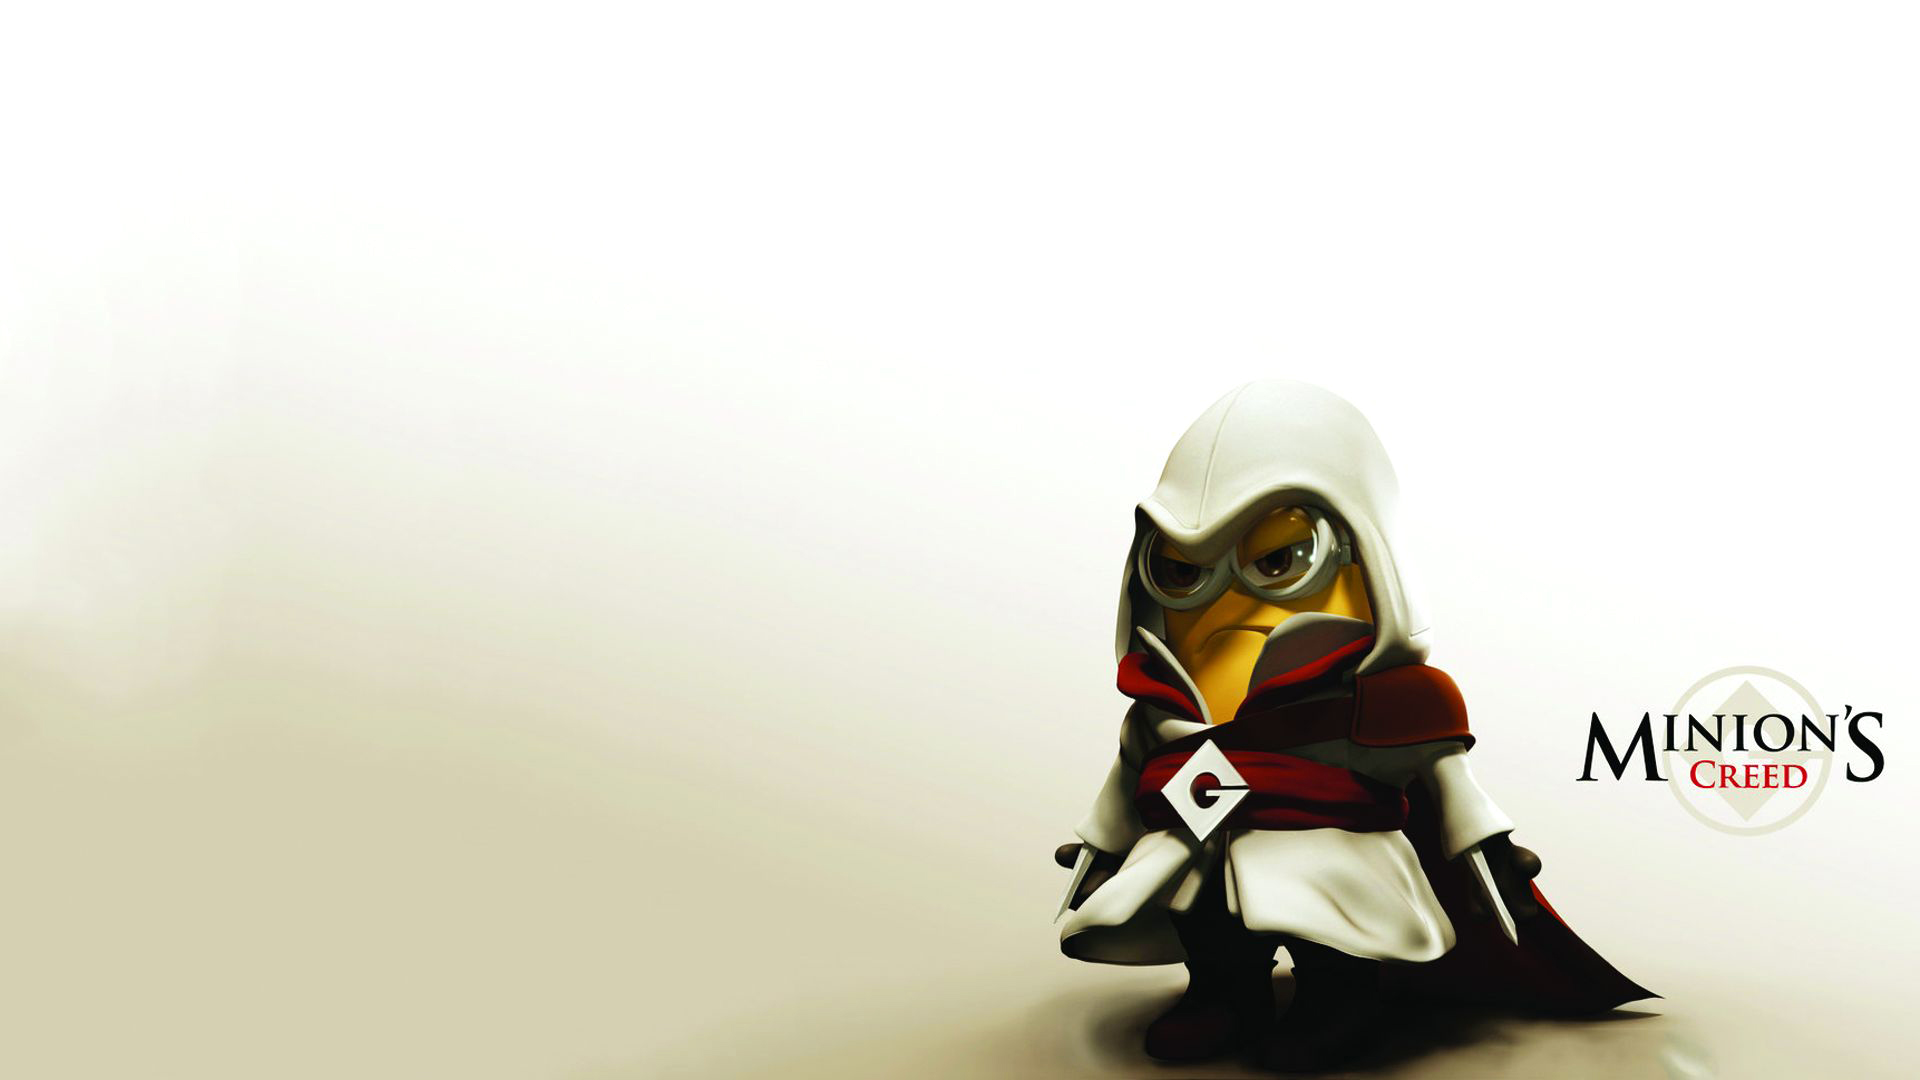 Minions Creed Assasin Funny HD Wallpaper   Stylish HD Wallpapers 1920x1080